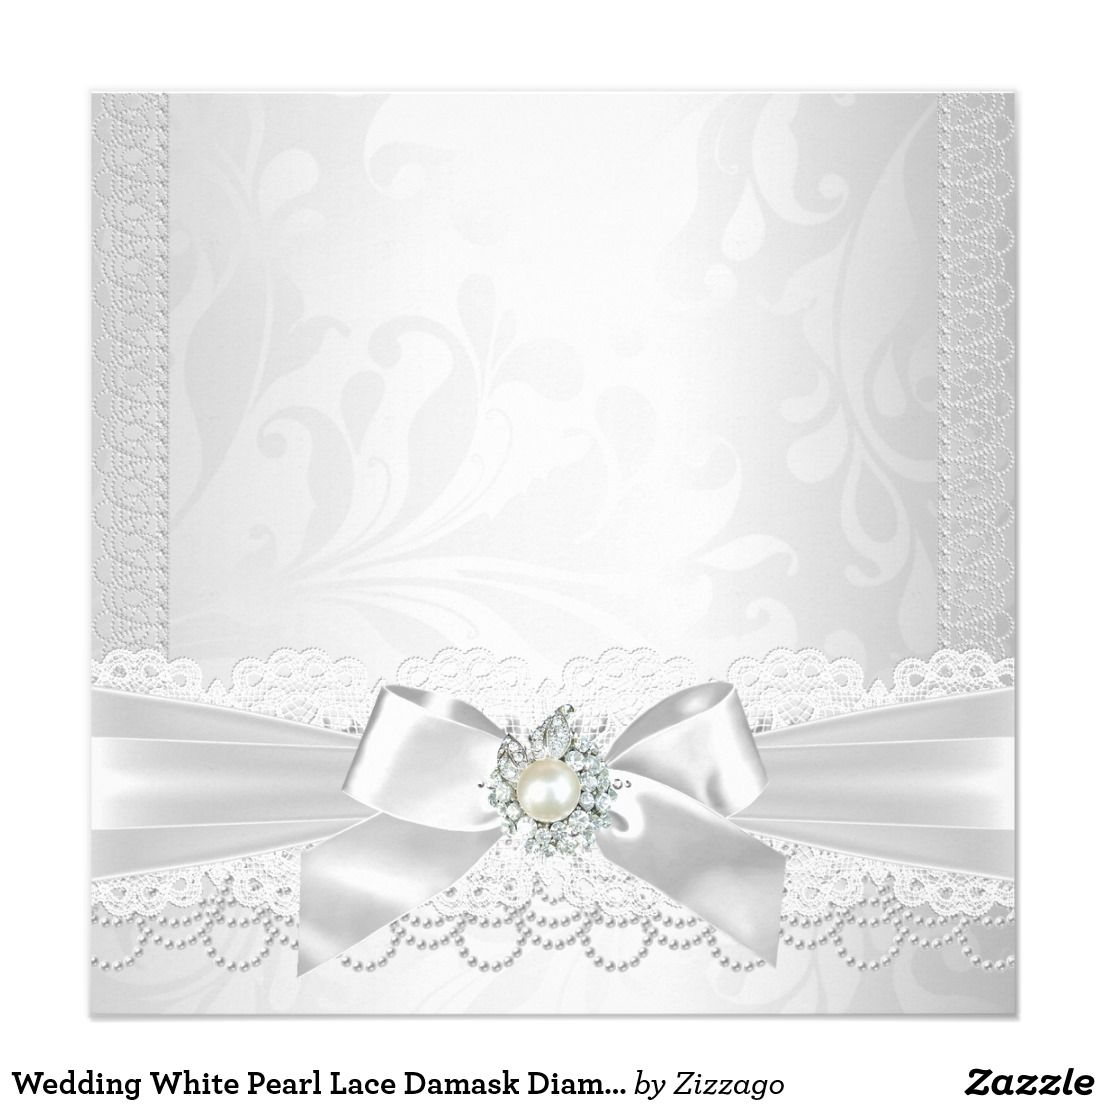 Wedding White Pearl Lace Damask Diamond Silver Invitation